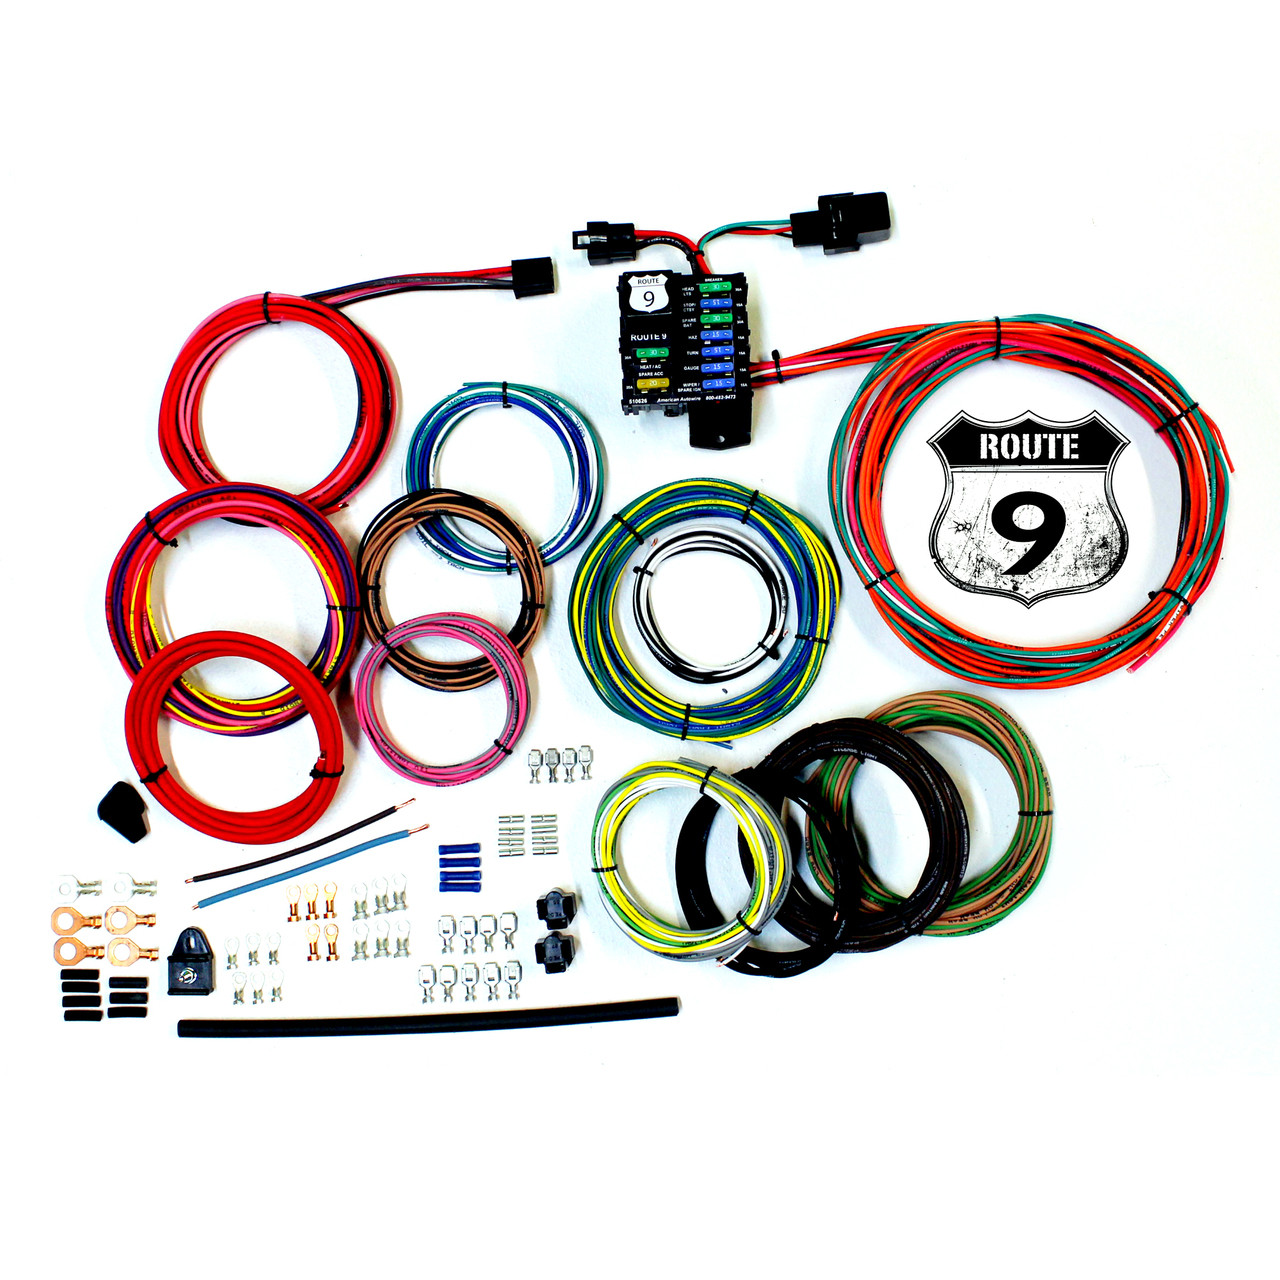 hight resolution of american autowire route 9 universal wiring kit so cal speed shop az aftermarket wiring kits american autowire toggle turn signal switch